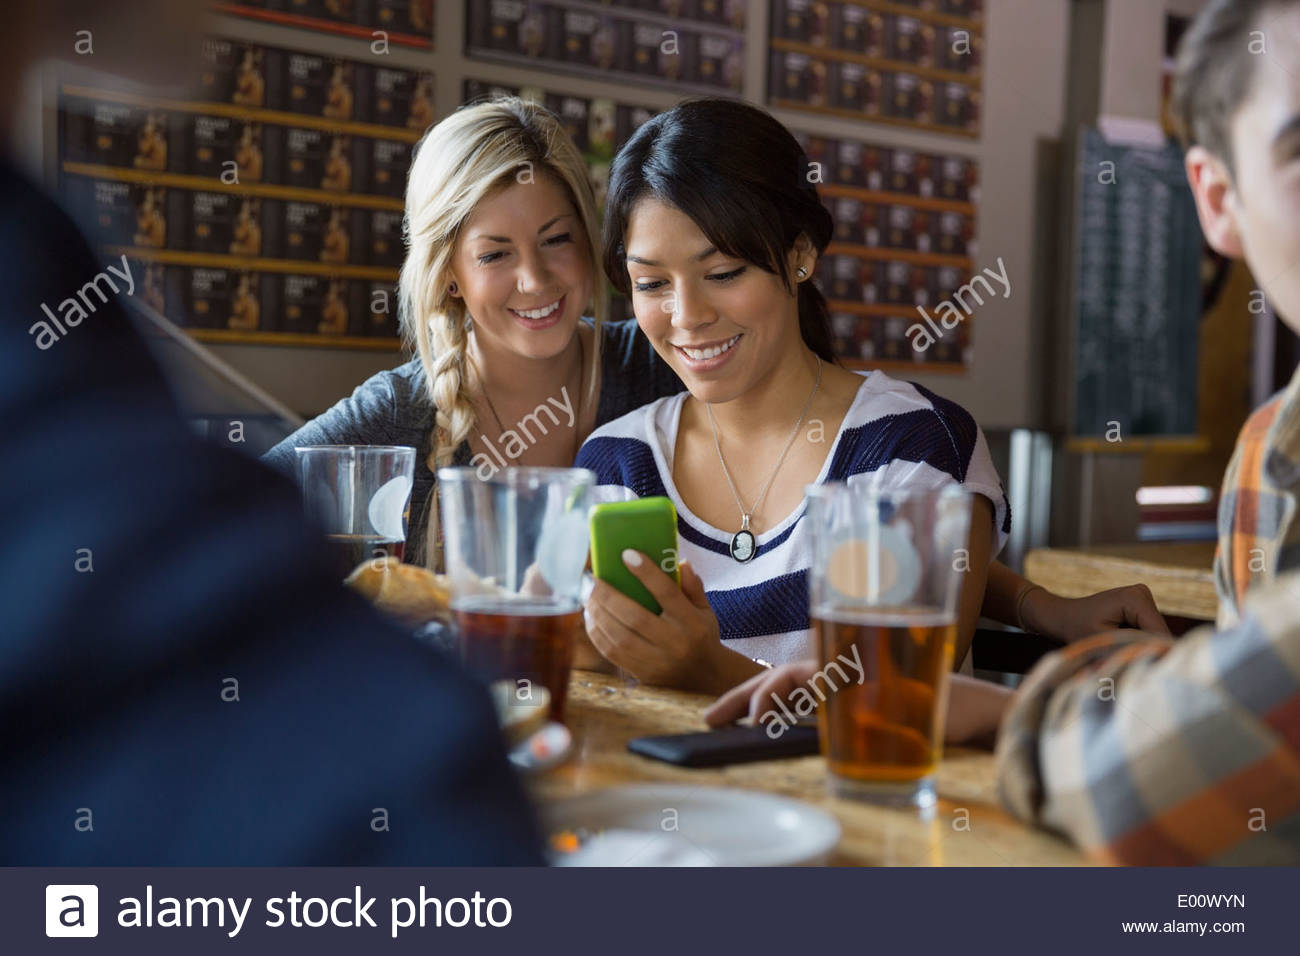 Friends text messaging with cell phone at brewery - Stock Image